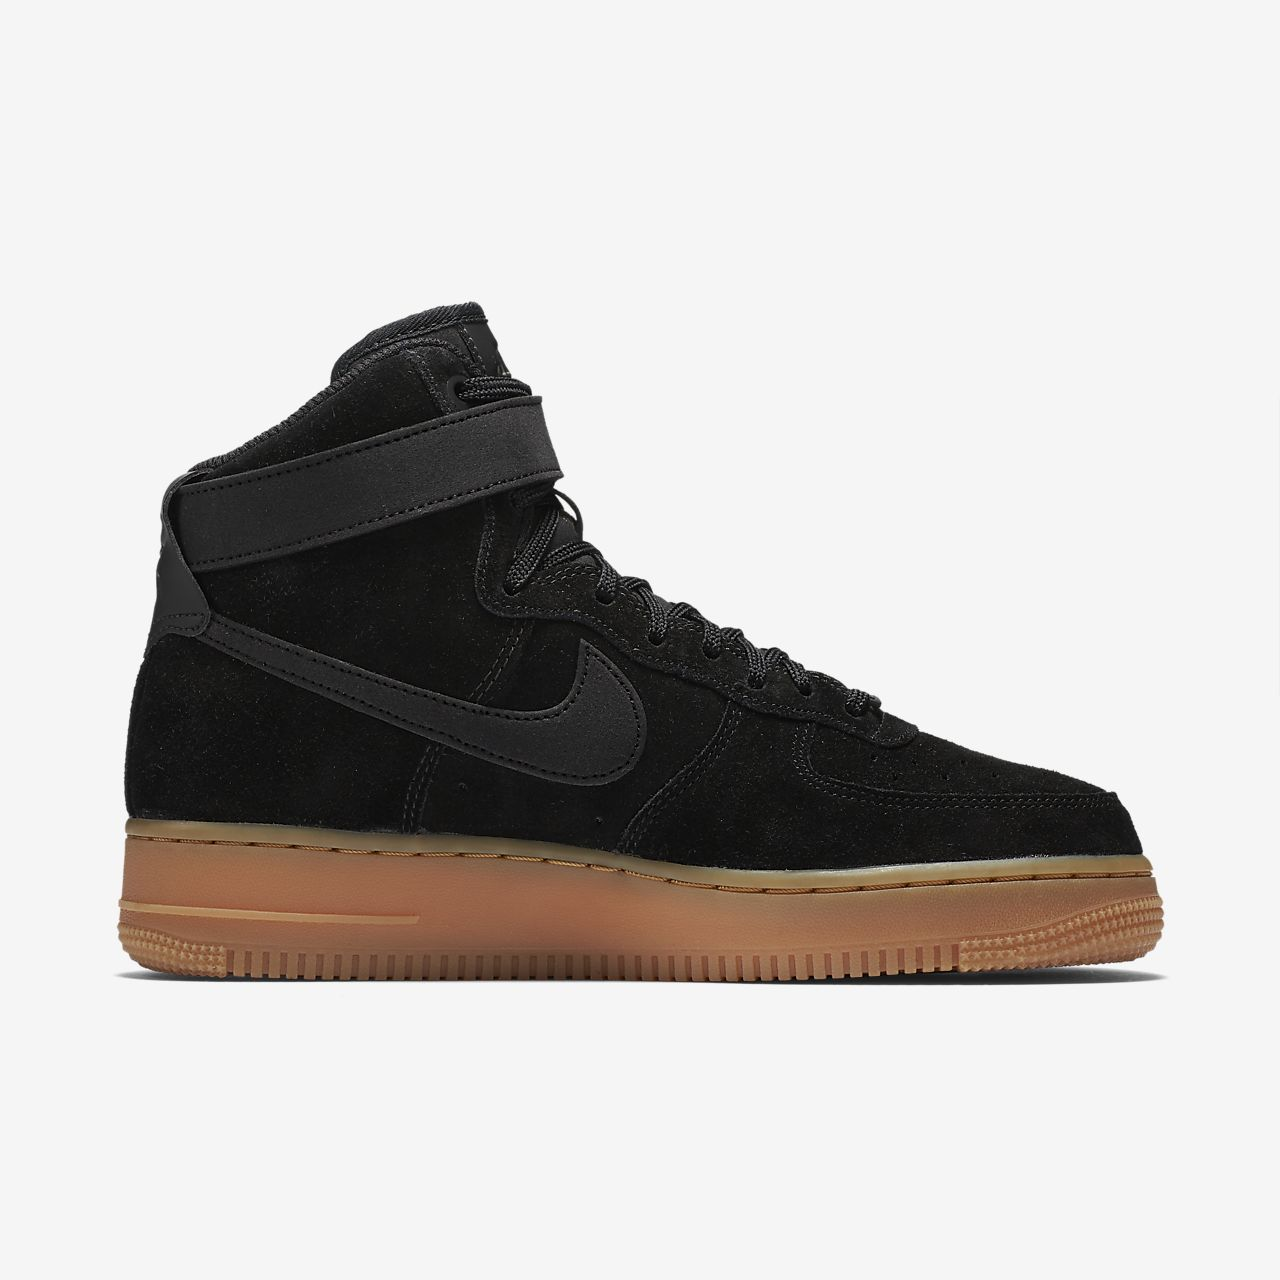 nike air force 1 hi women's shoe nz